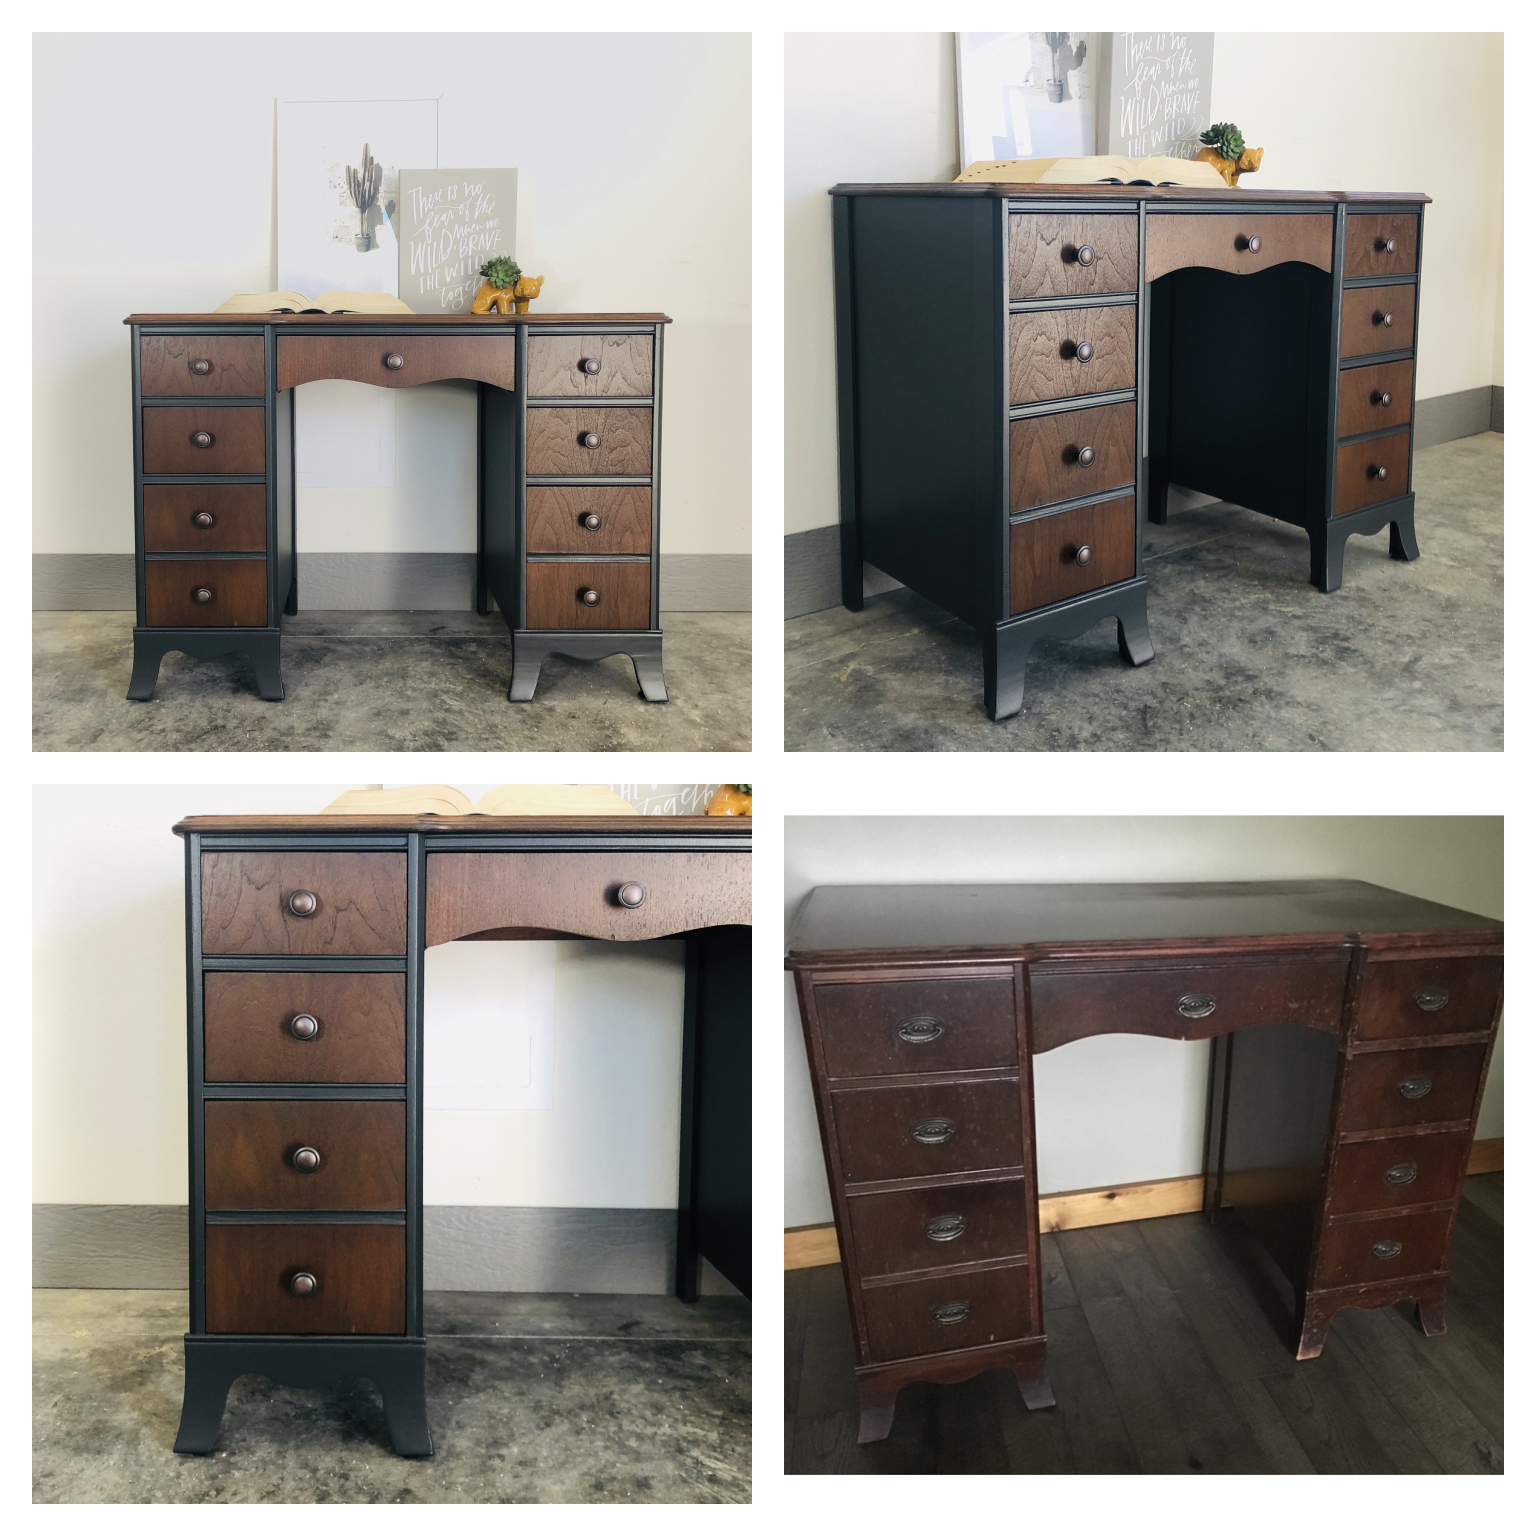 Iron Ore and Antique Walnut Desk